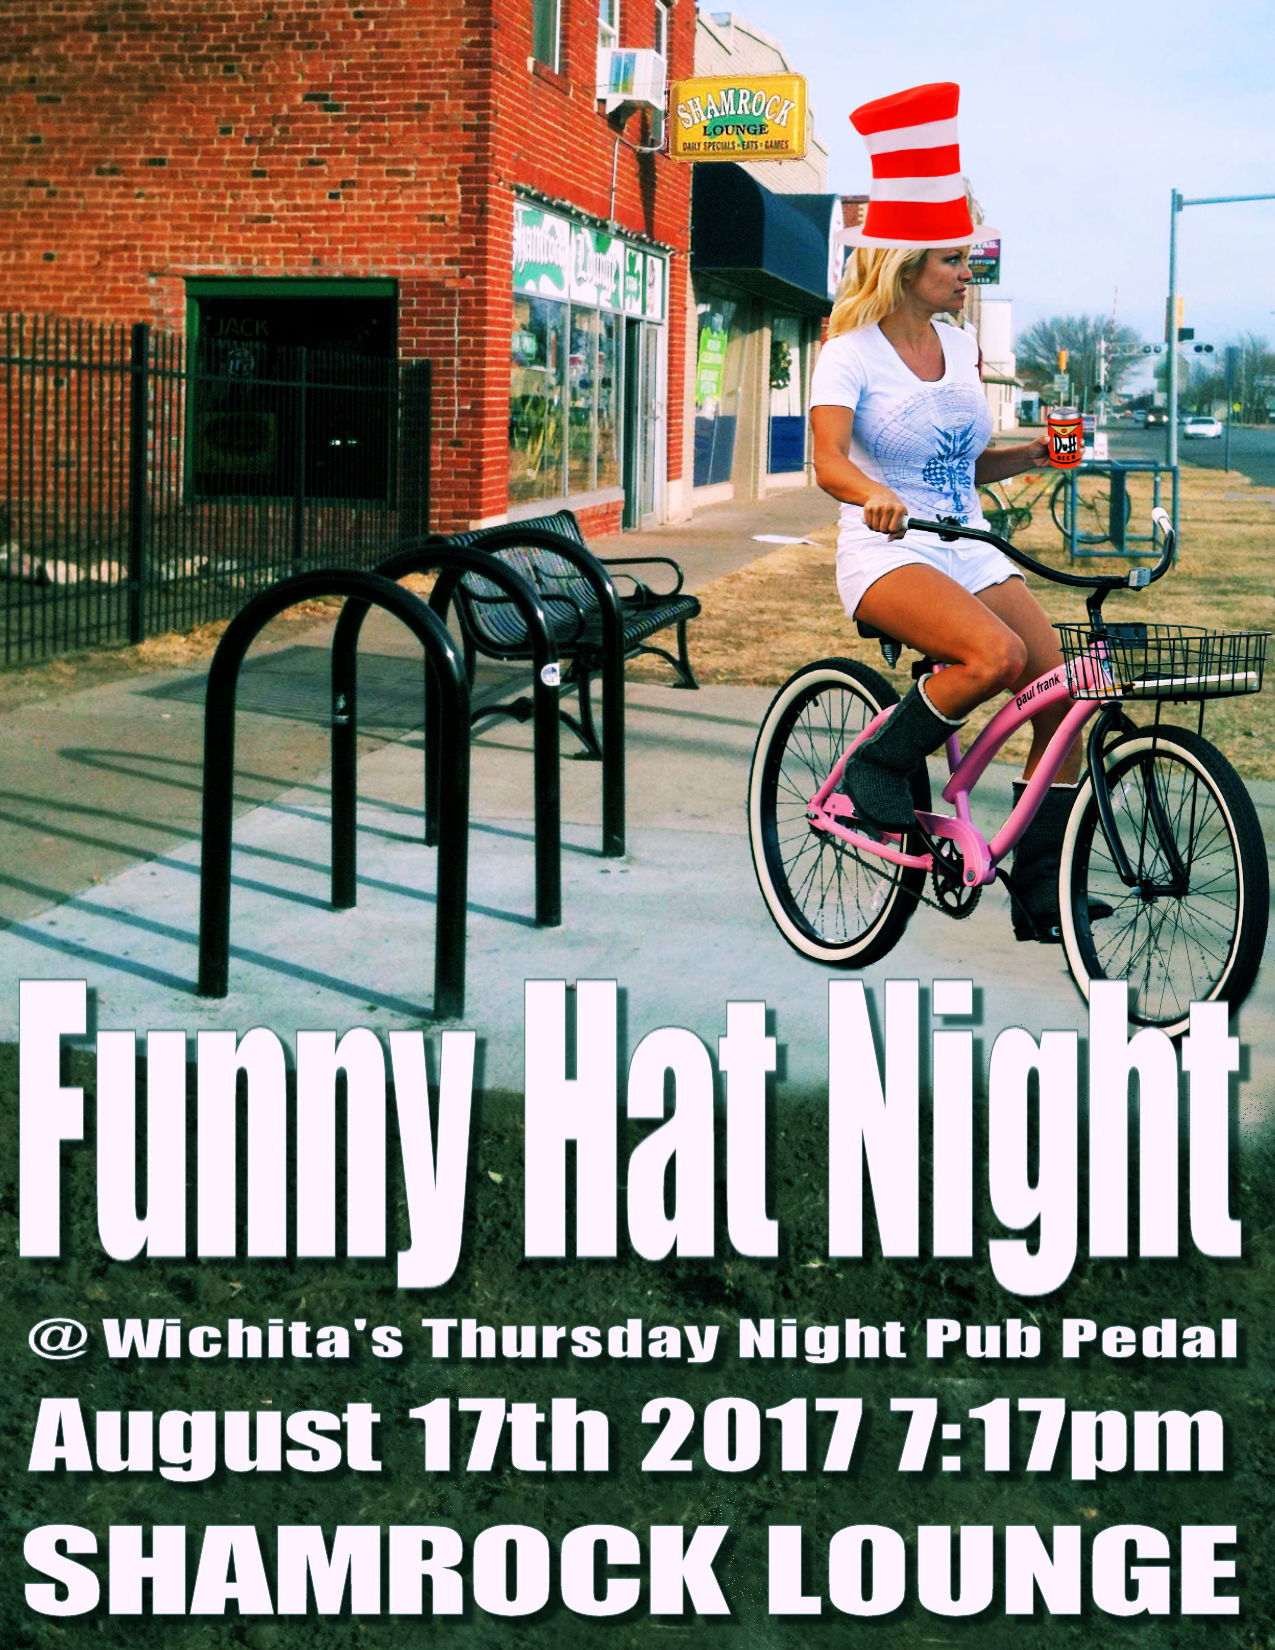 Funny Hat Night @ Shamrock Lounge | Wichita | Kansas | United States